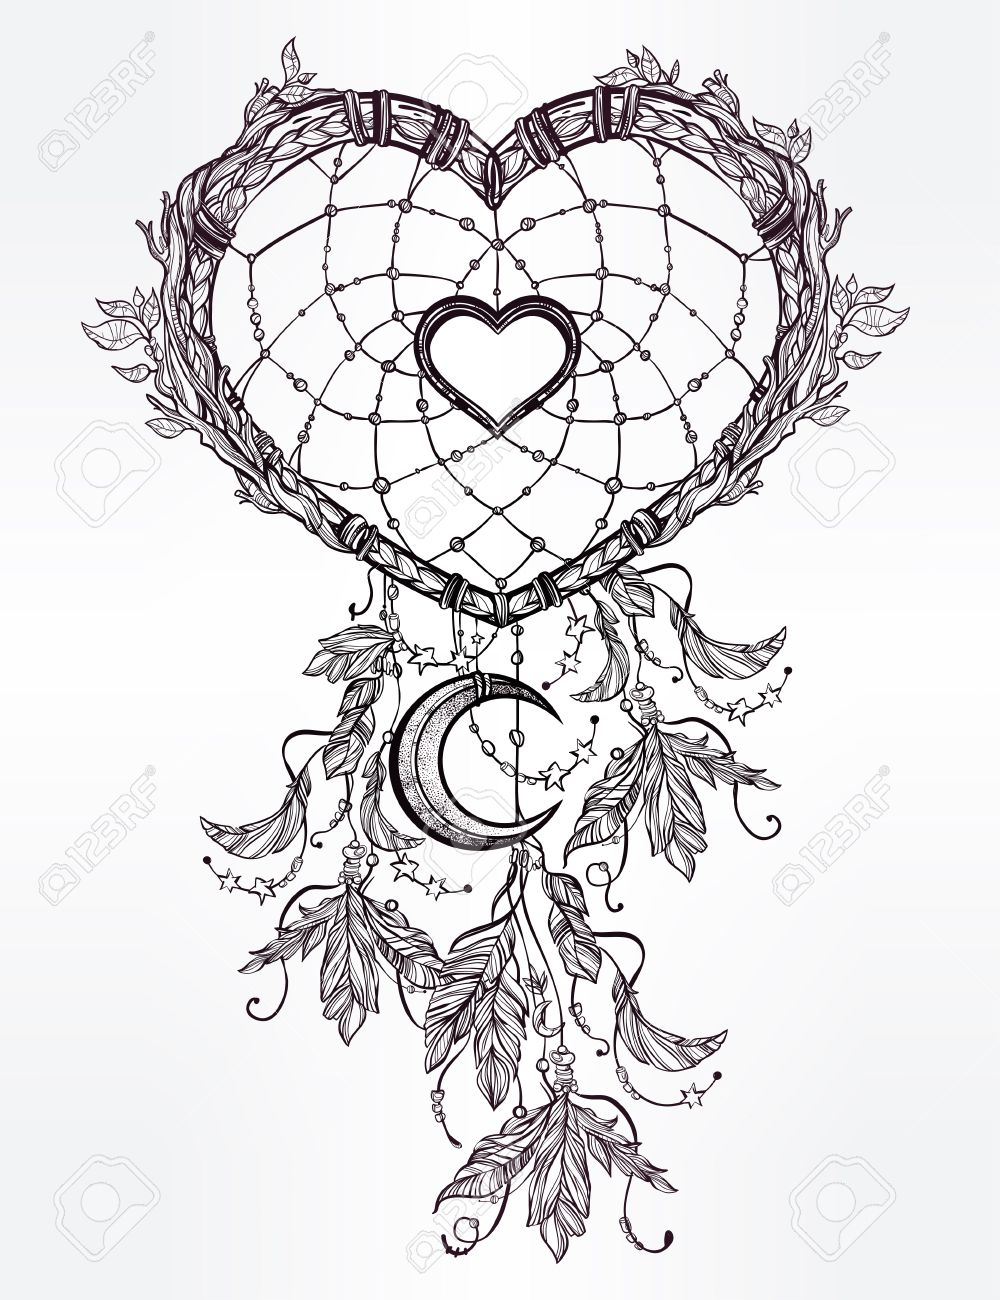 1000x1300 Hand Drawn Romantic Drawing Of A Heart Shaped Dream Catcher